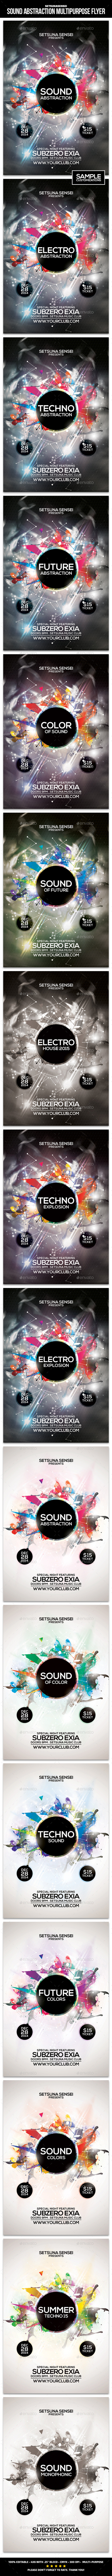 Sound Abstraction Multipurpose Flyer - Clubs & Parties Events